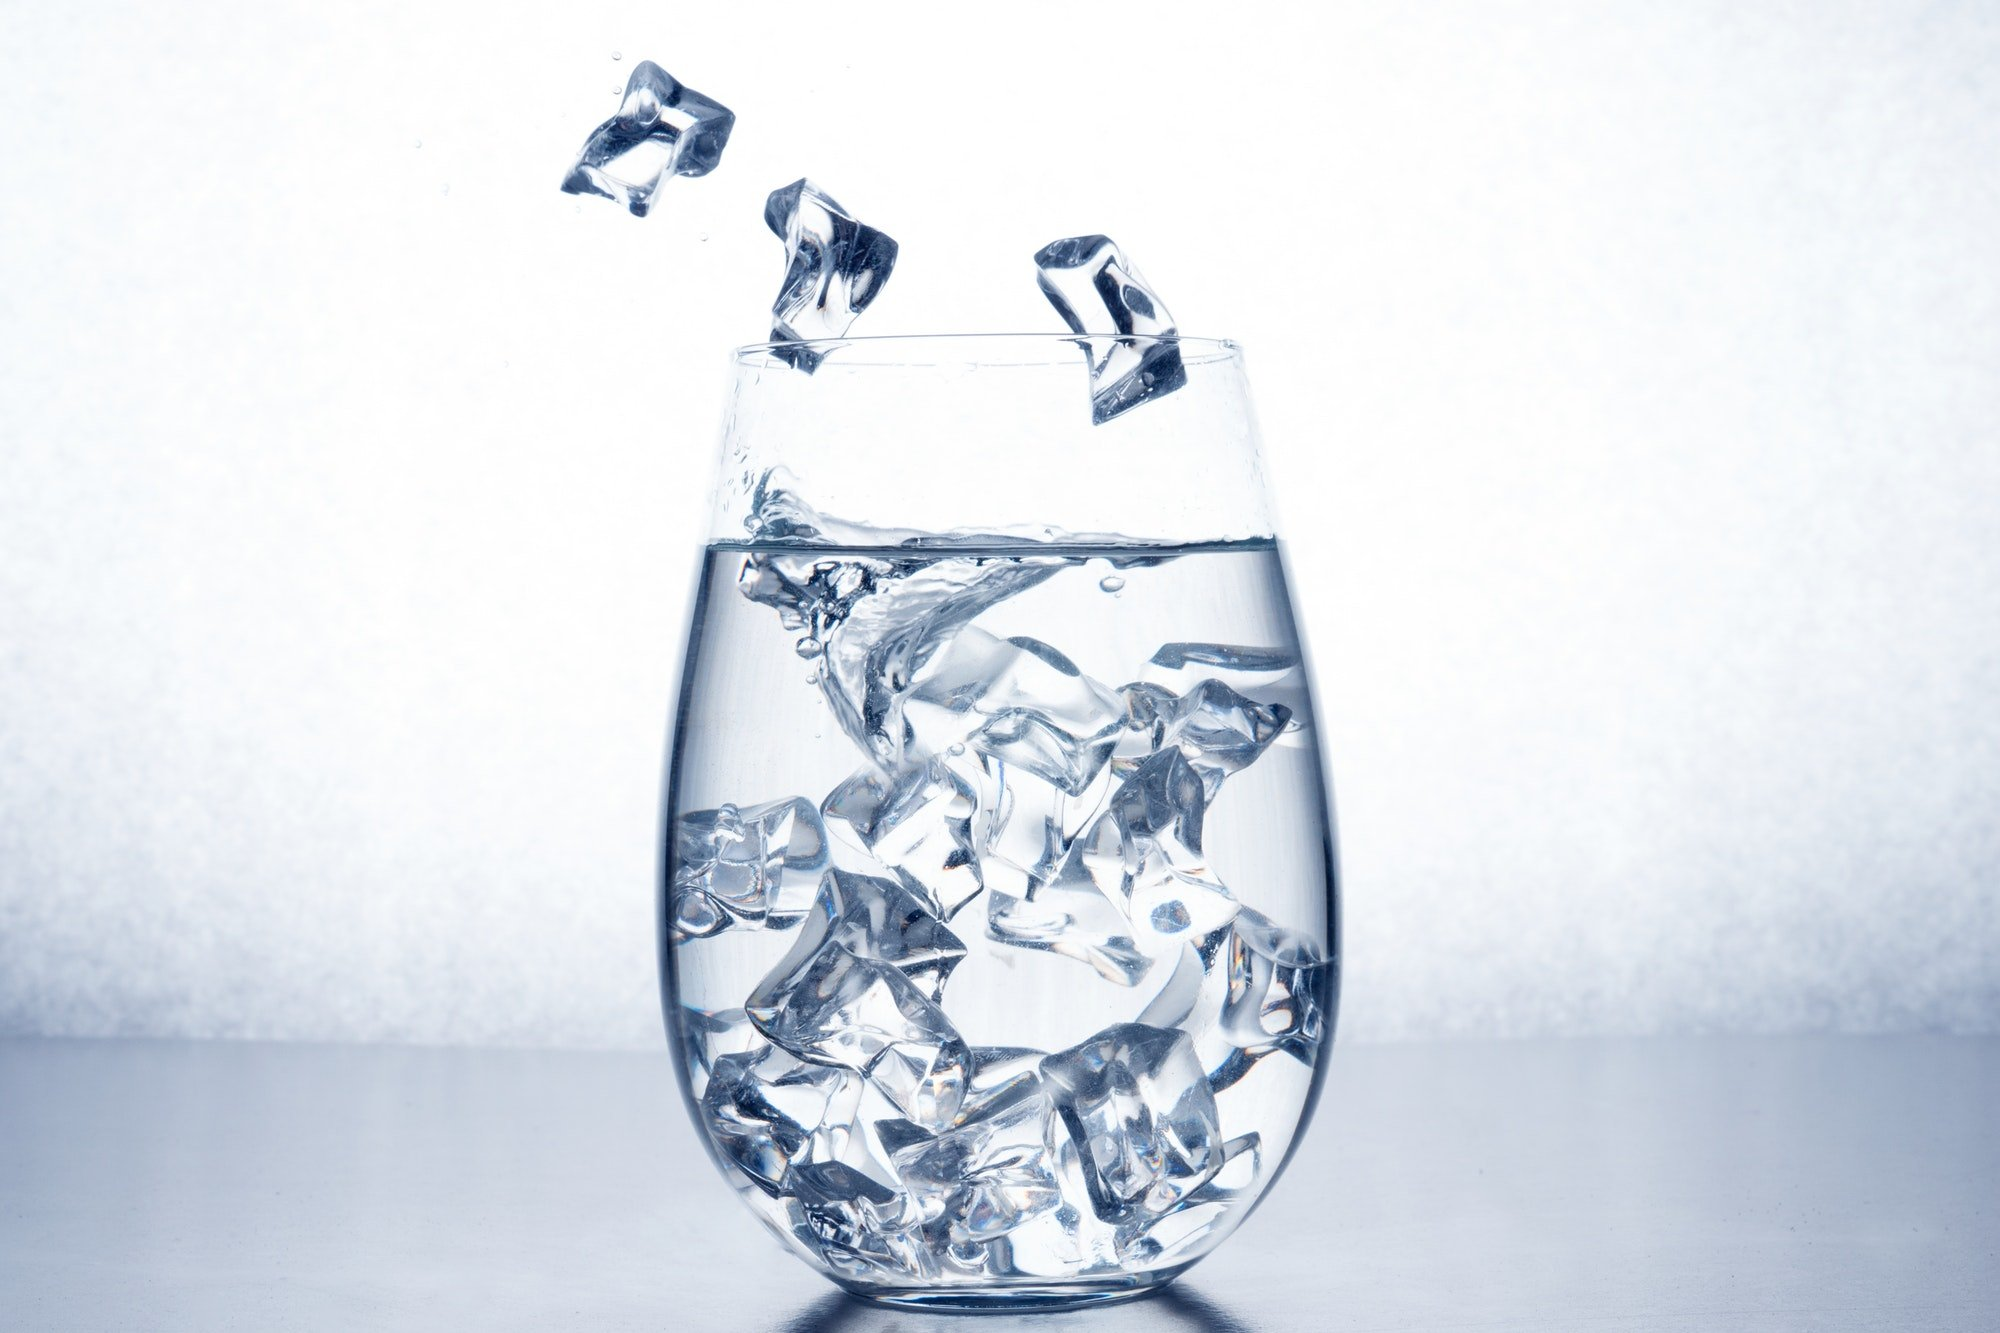 Glass of water with ice cubes.